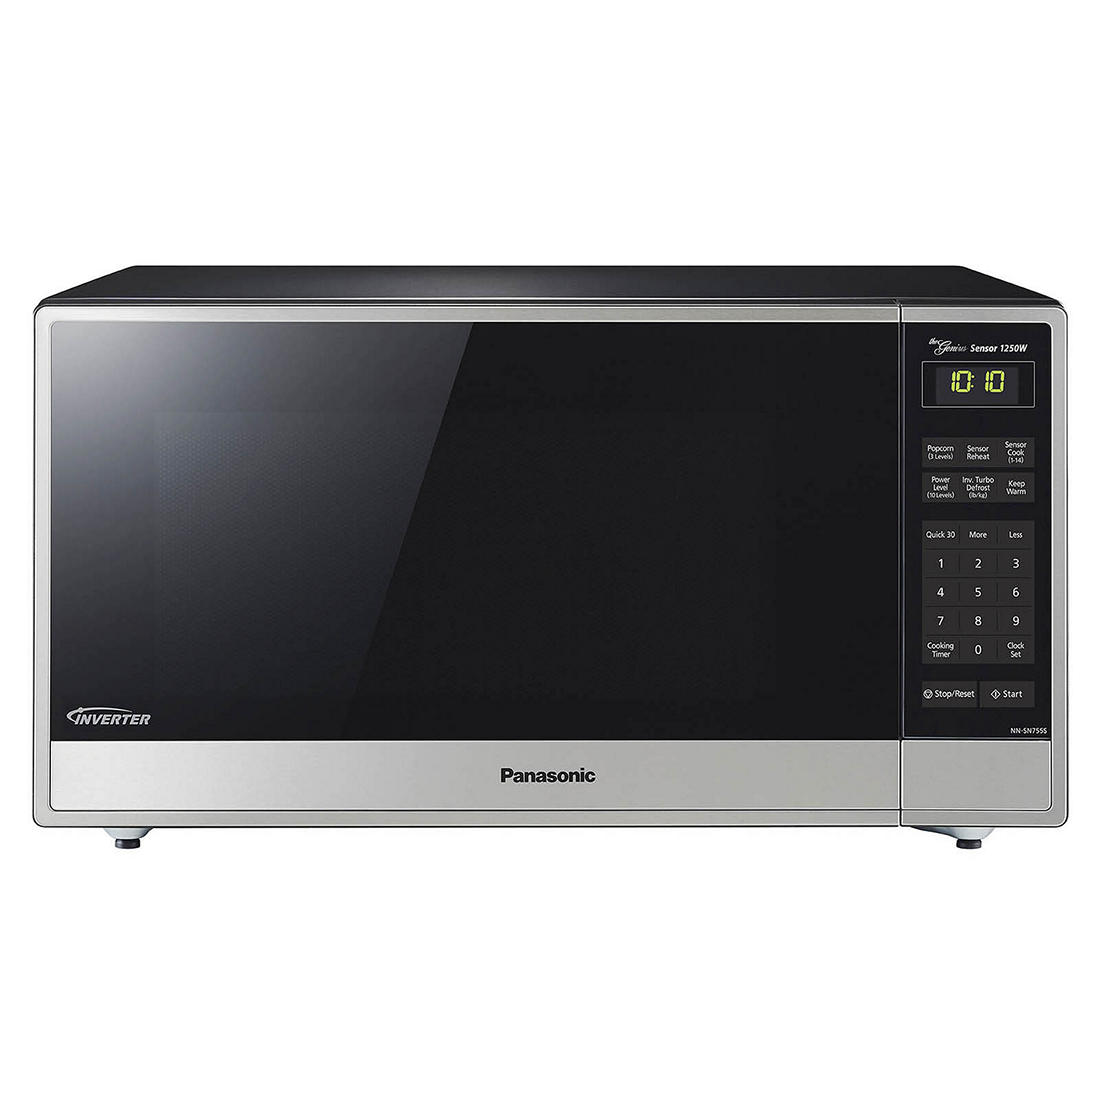 Panasonic 1 6 Cu Ft 250w Microwave With Genius Inverter Technology Stainless Steel Black